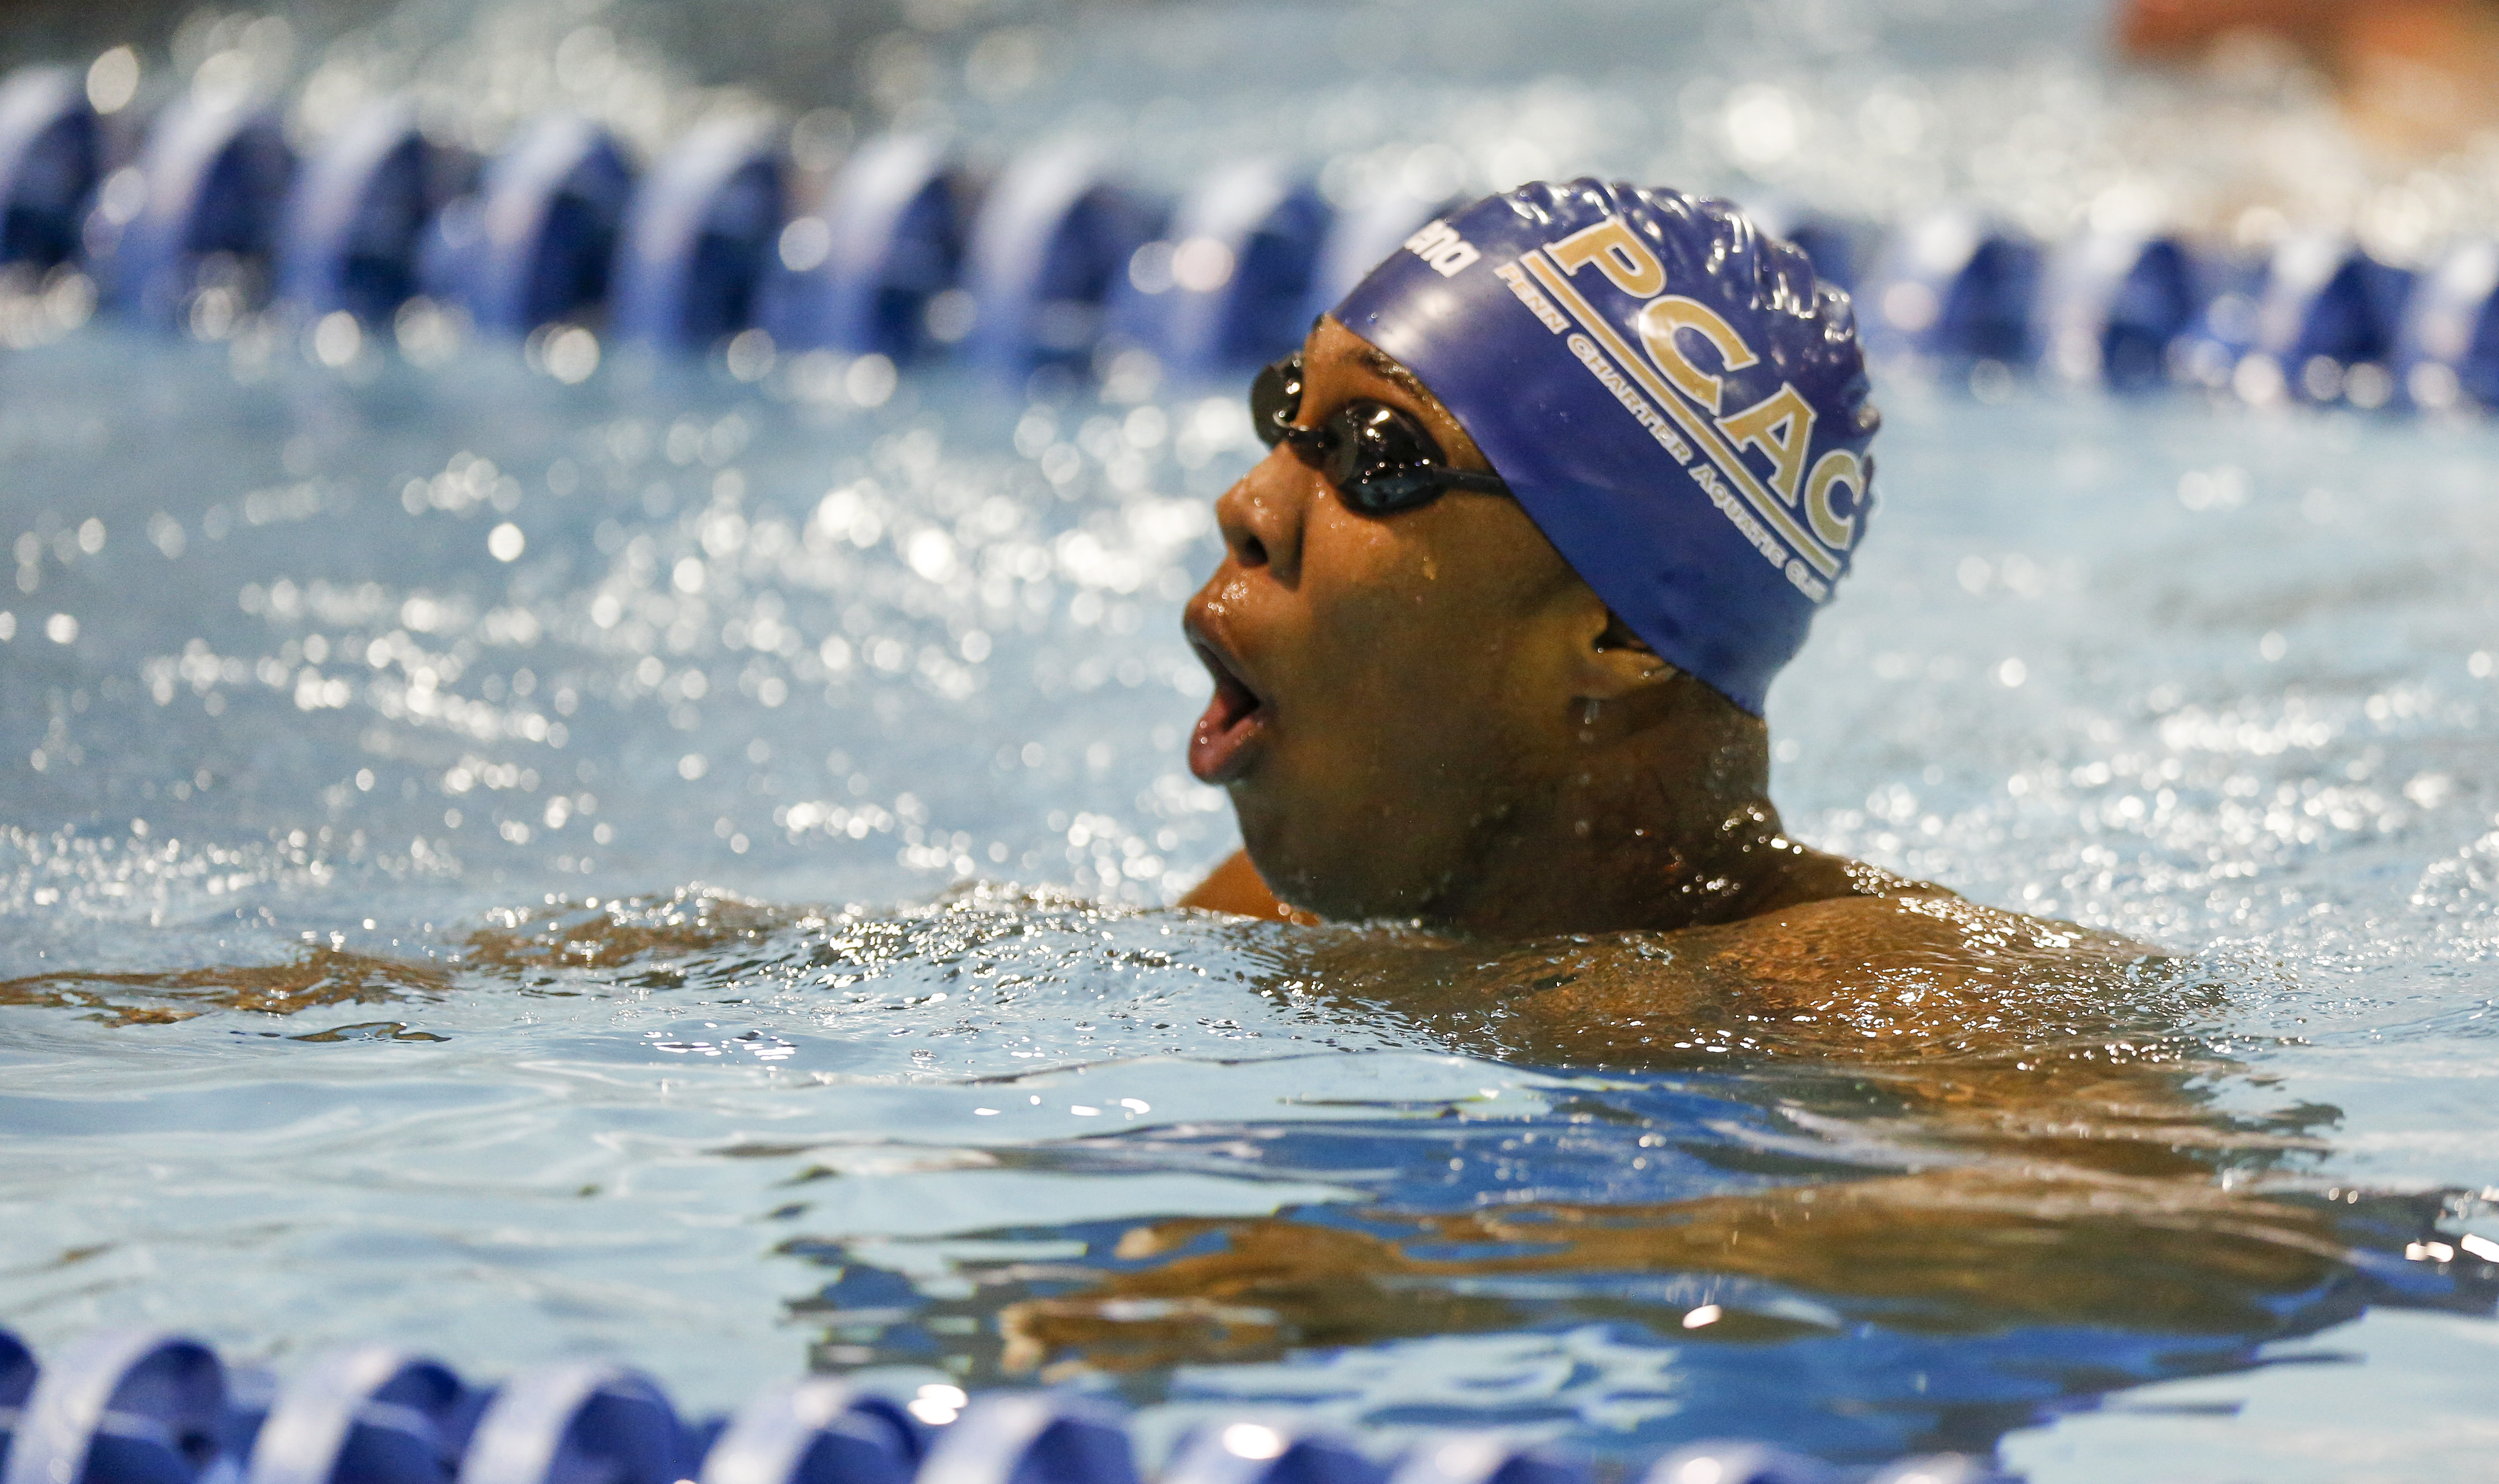 Reece Whitley at the Arena Pro Swim Series meet in Charlotte, N.C., on May 15, 2015.